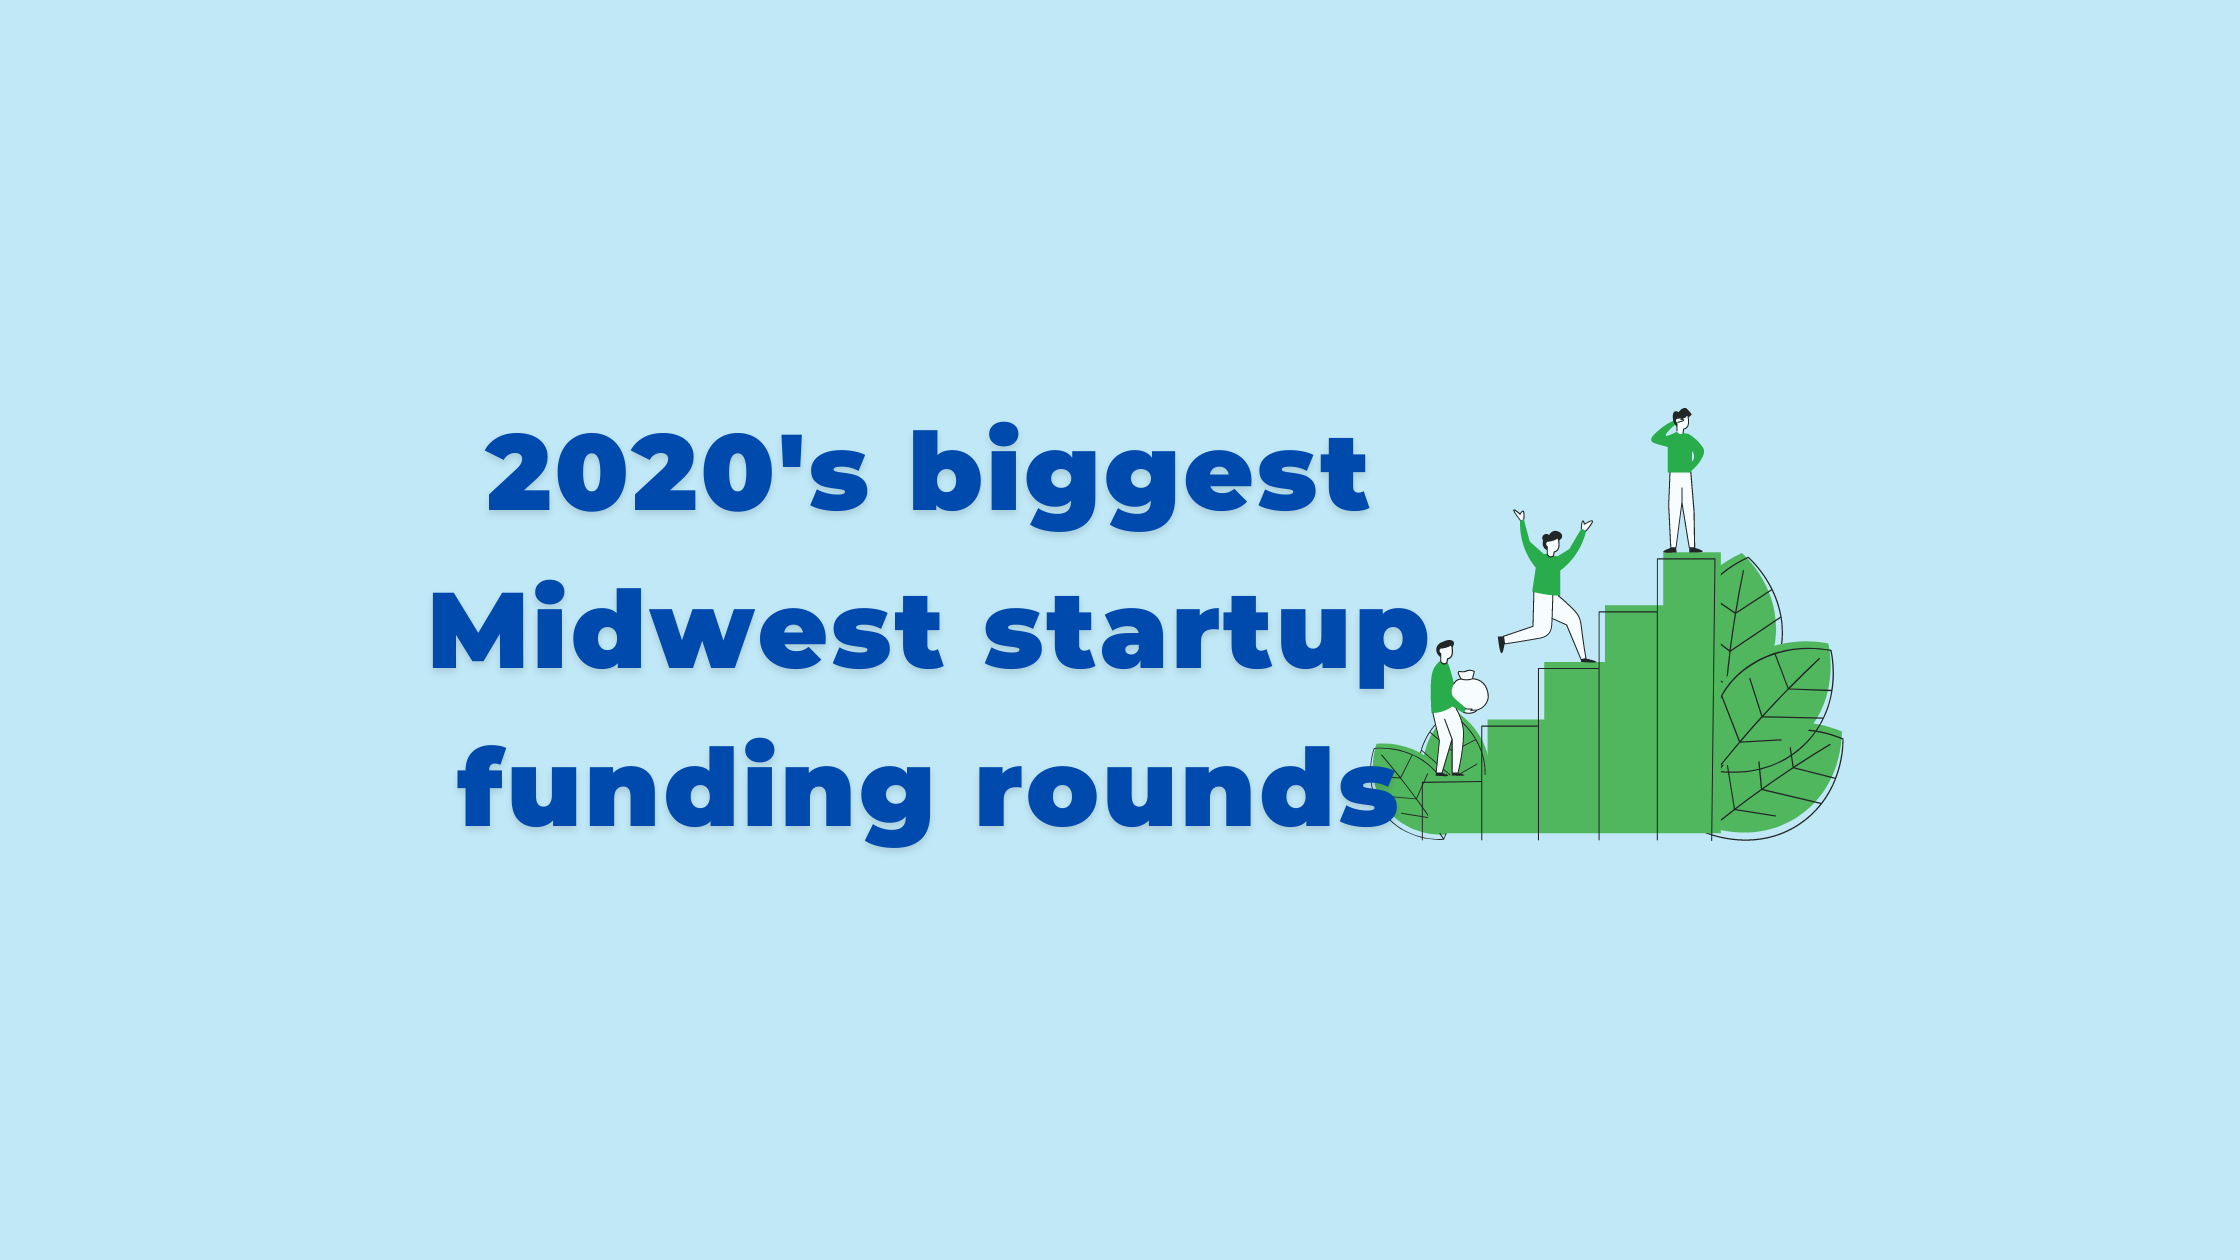 Top venture capital funding for Midwest tech startups in 2020